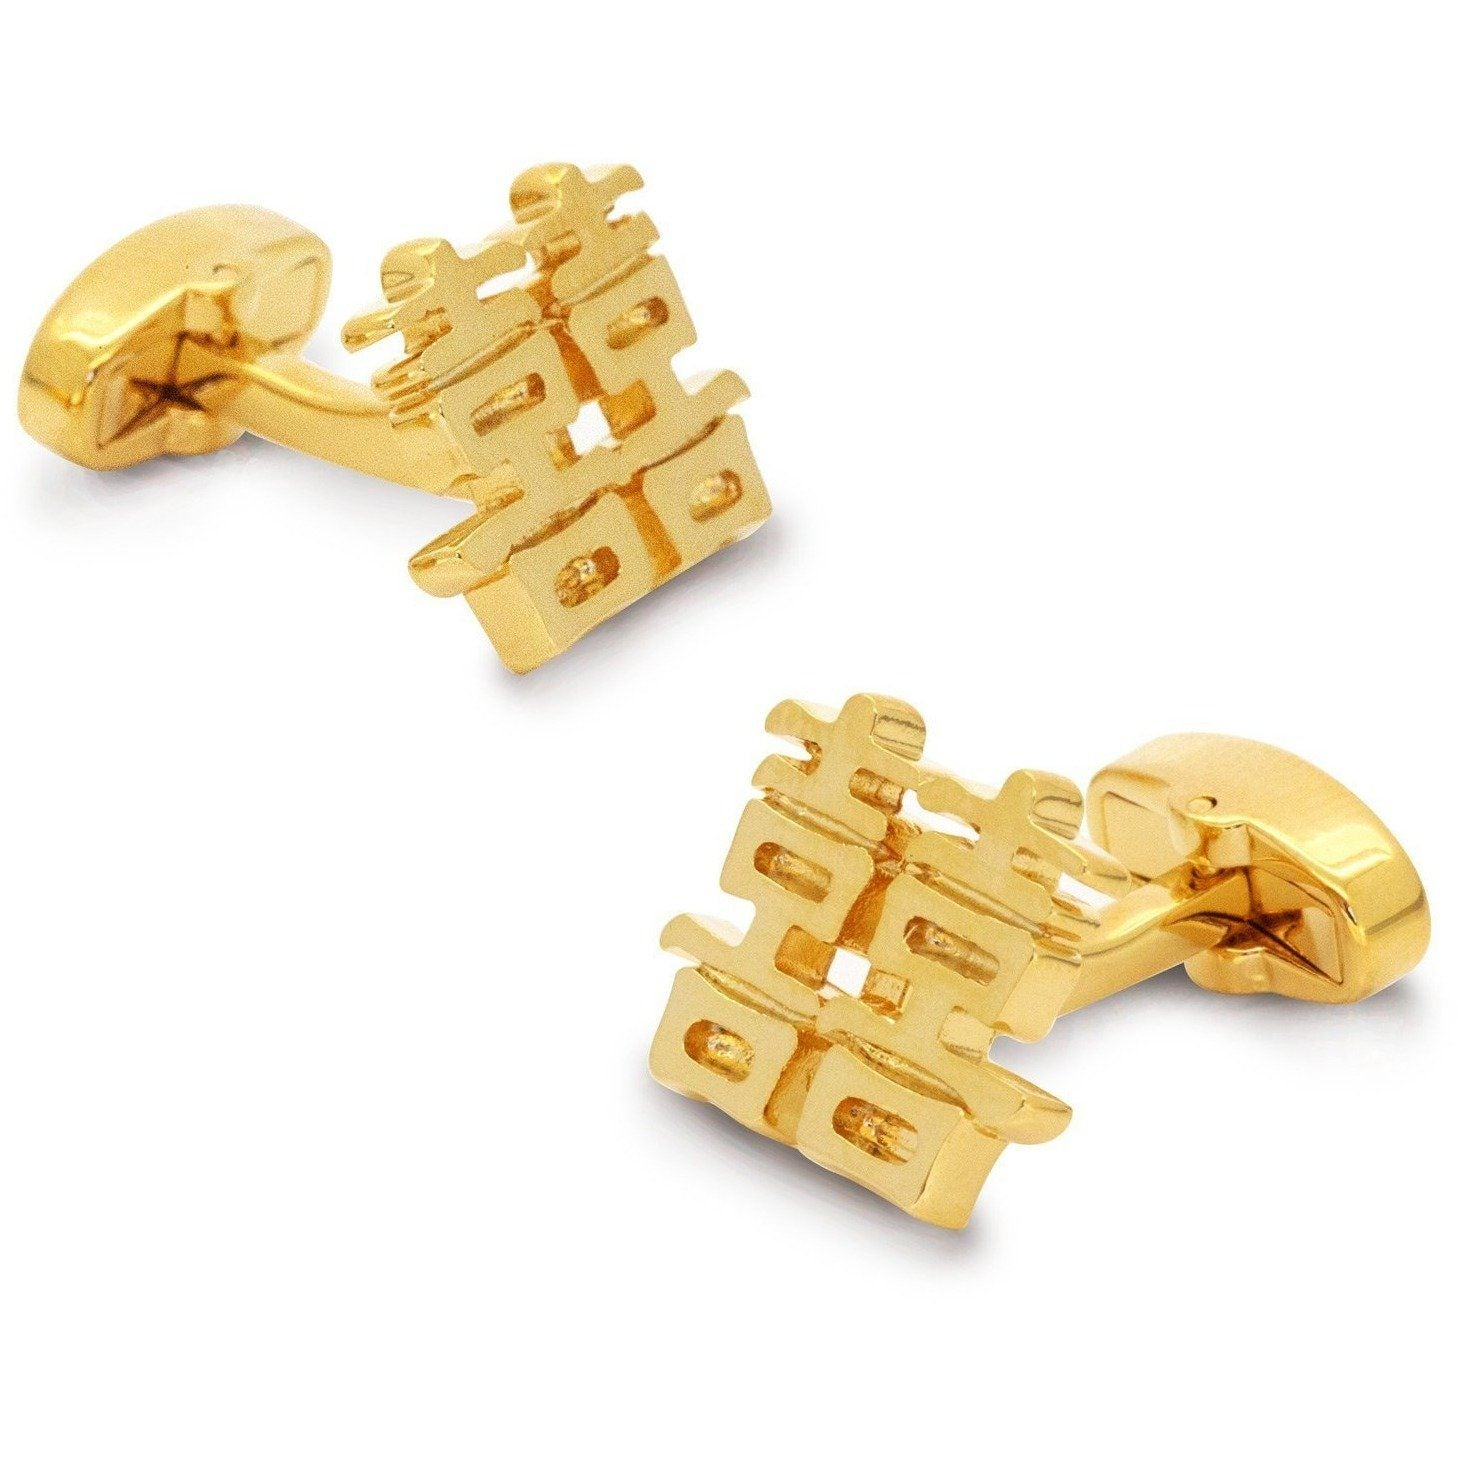 Chinese Symbol of Double Happiness Gold, Novelty Cufflinks, Cuffed.com.au, CL8567, $29.00